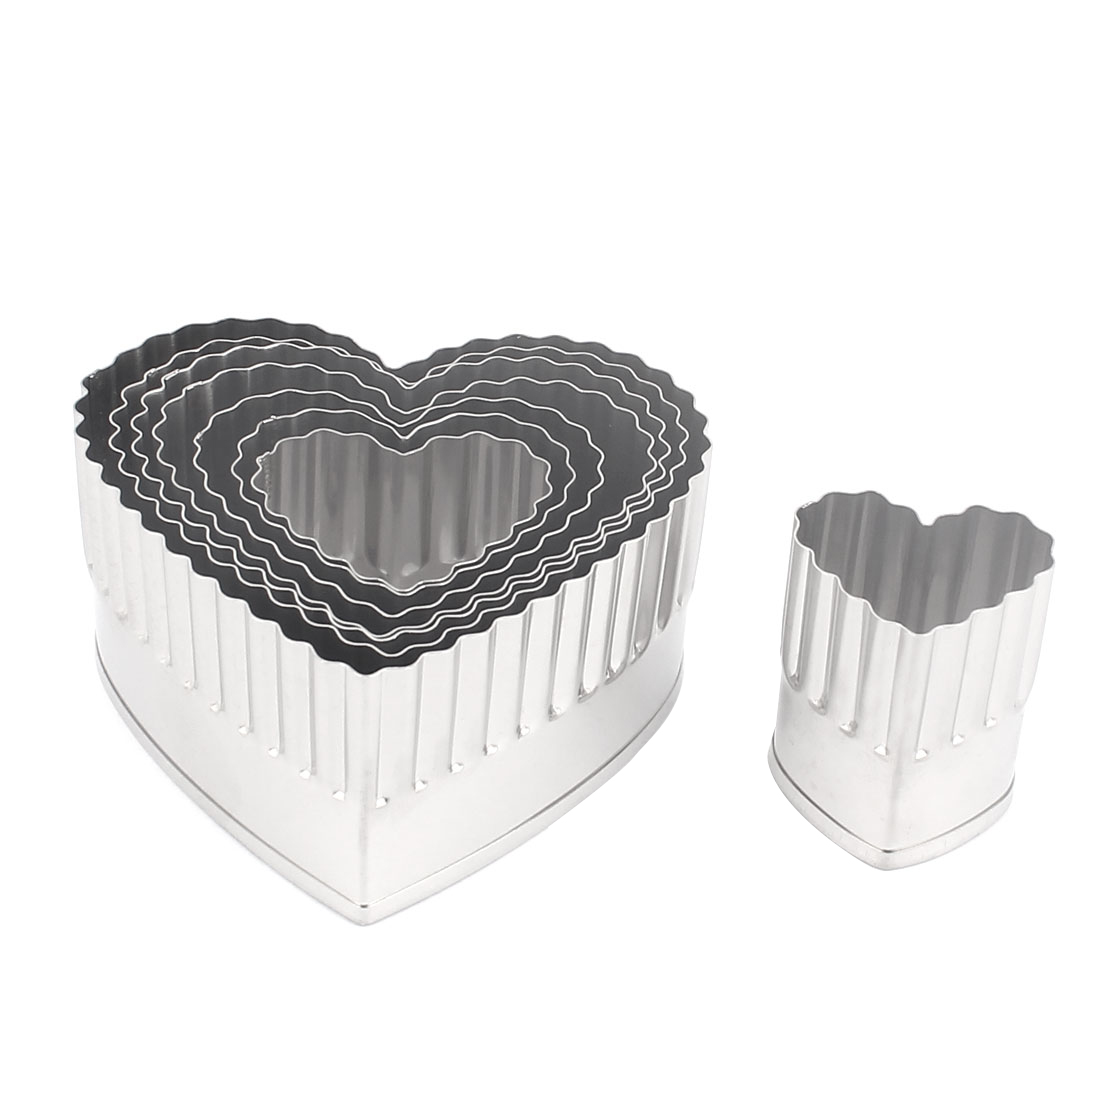 Unique Bargains Home Stainless Steel Heart Shape Cake Cookie Mold Cutter Set 8 in 1w Box